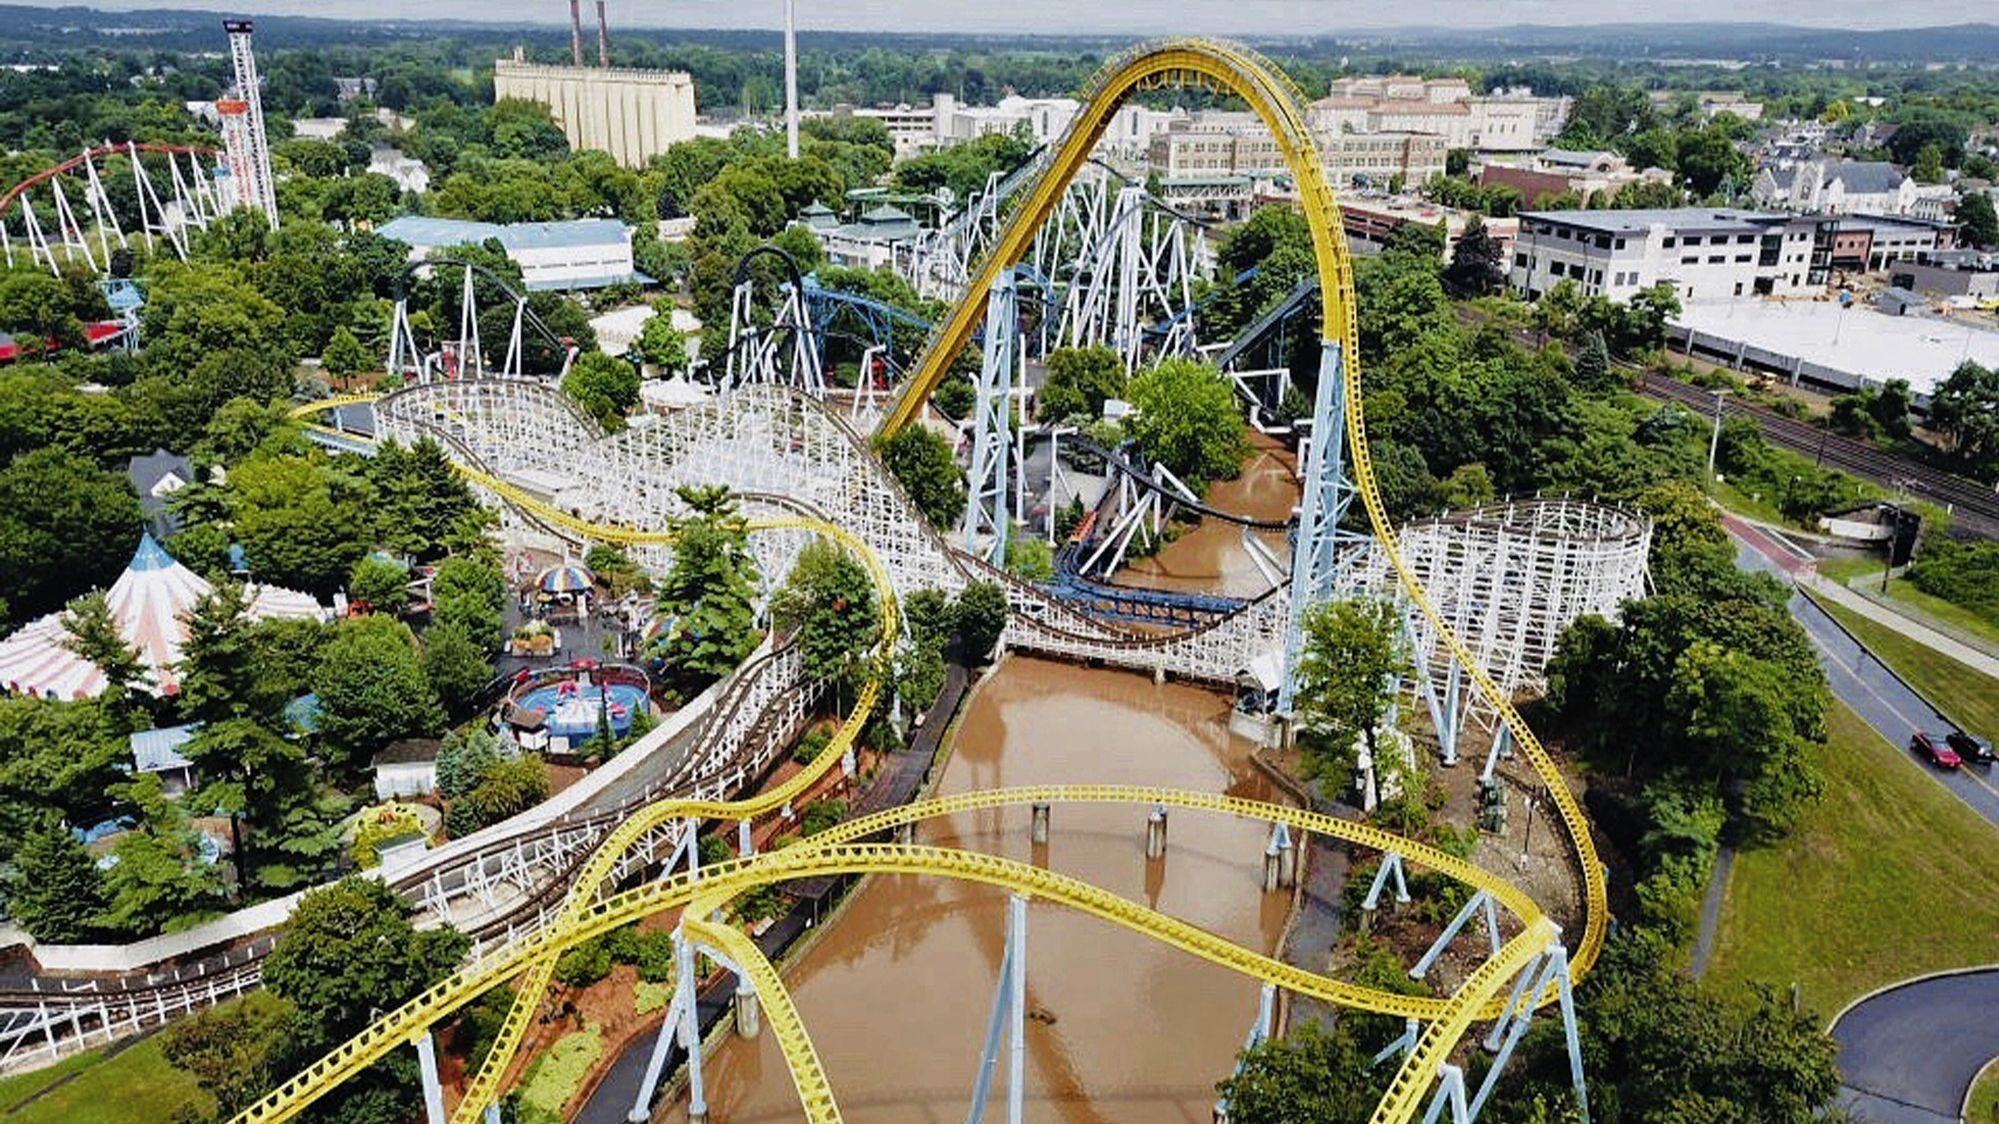 Hersheypark Reopens After Flooding Causes 1 Day Shutdown The